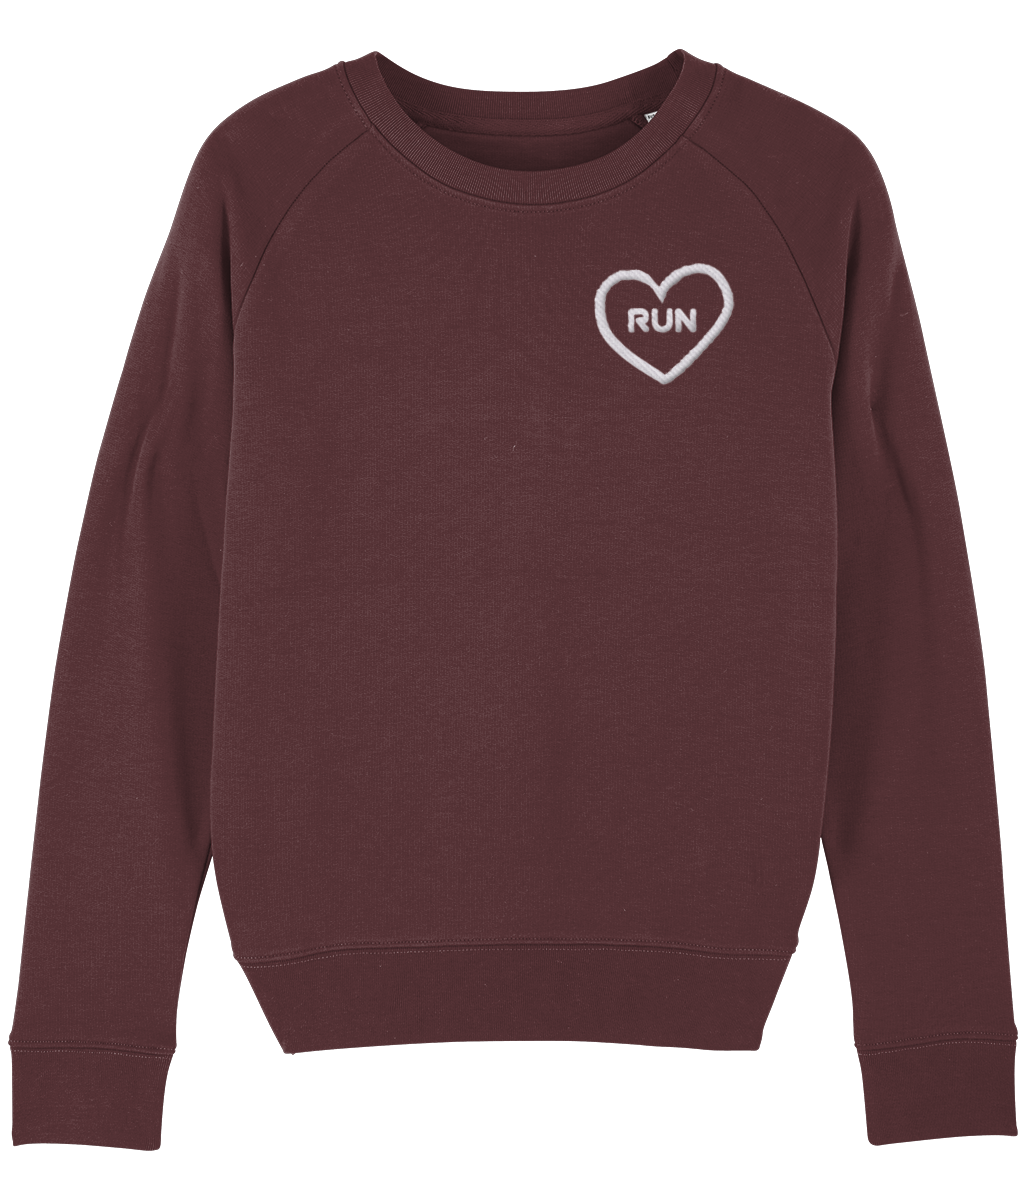 Embroidered Run Heart Sweater